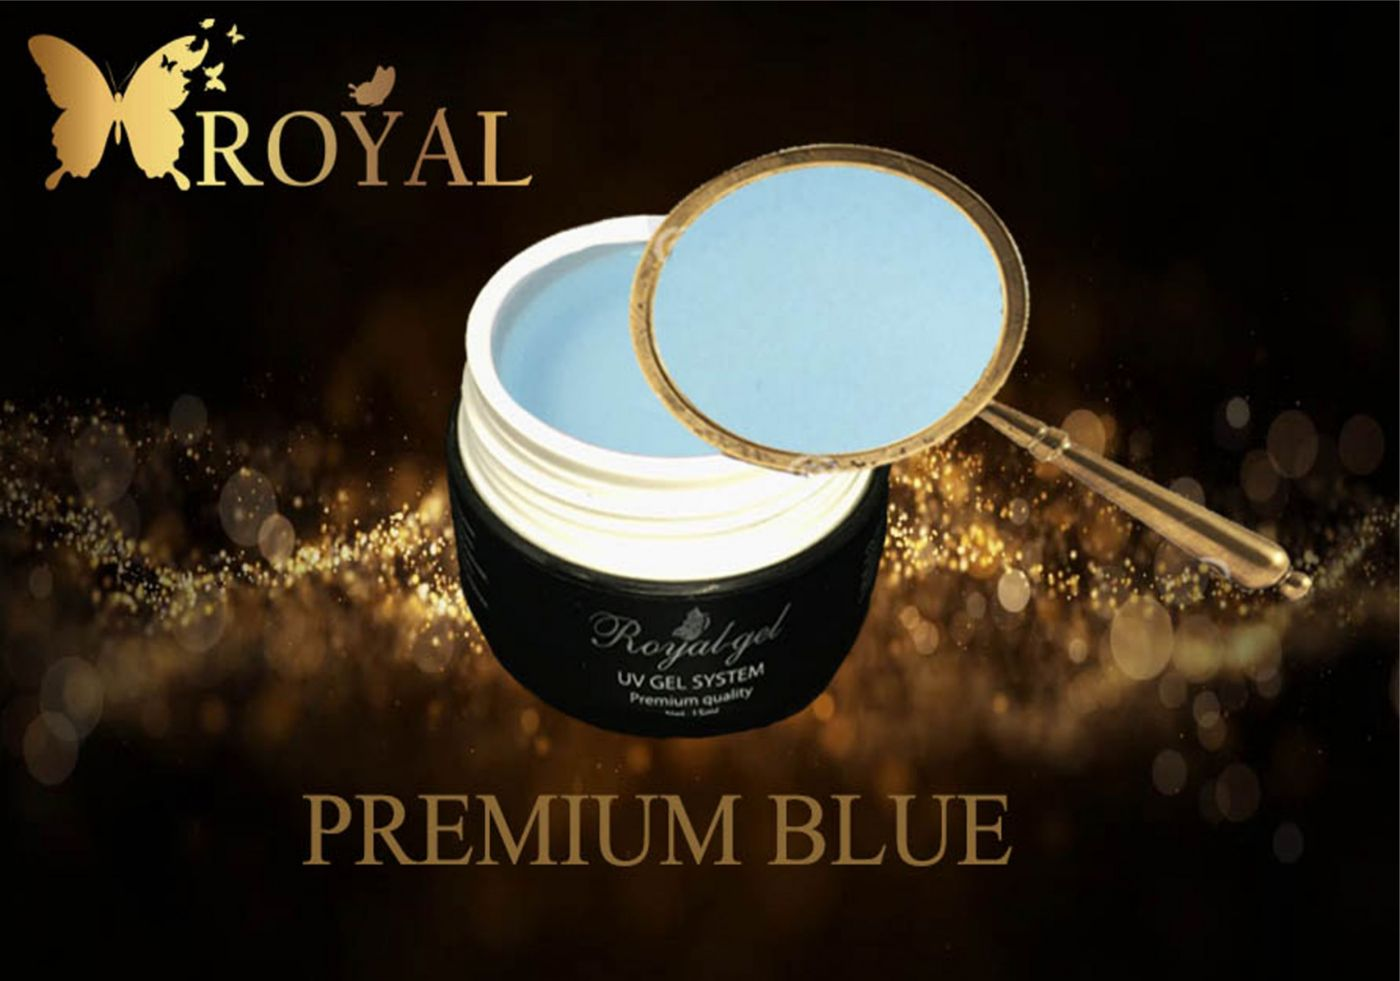 PREMIUM BLUE ROYAL GEL